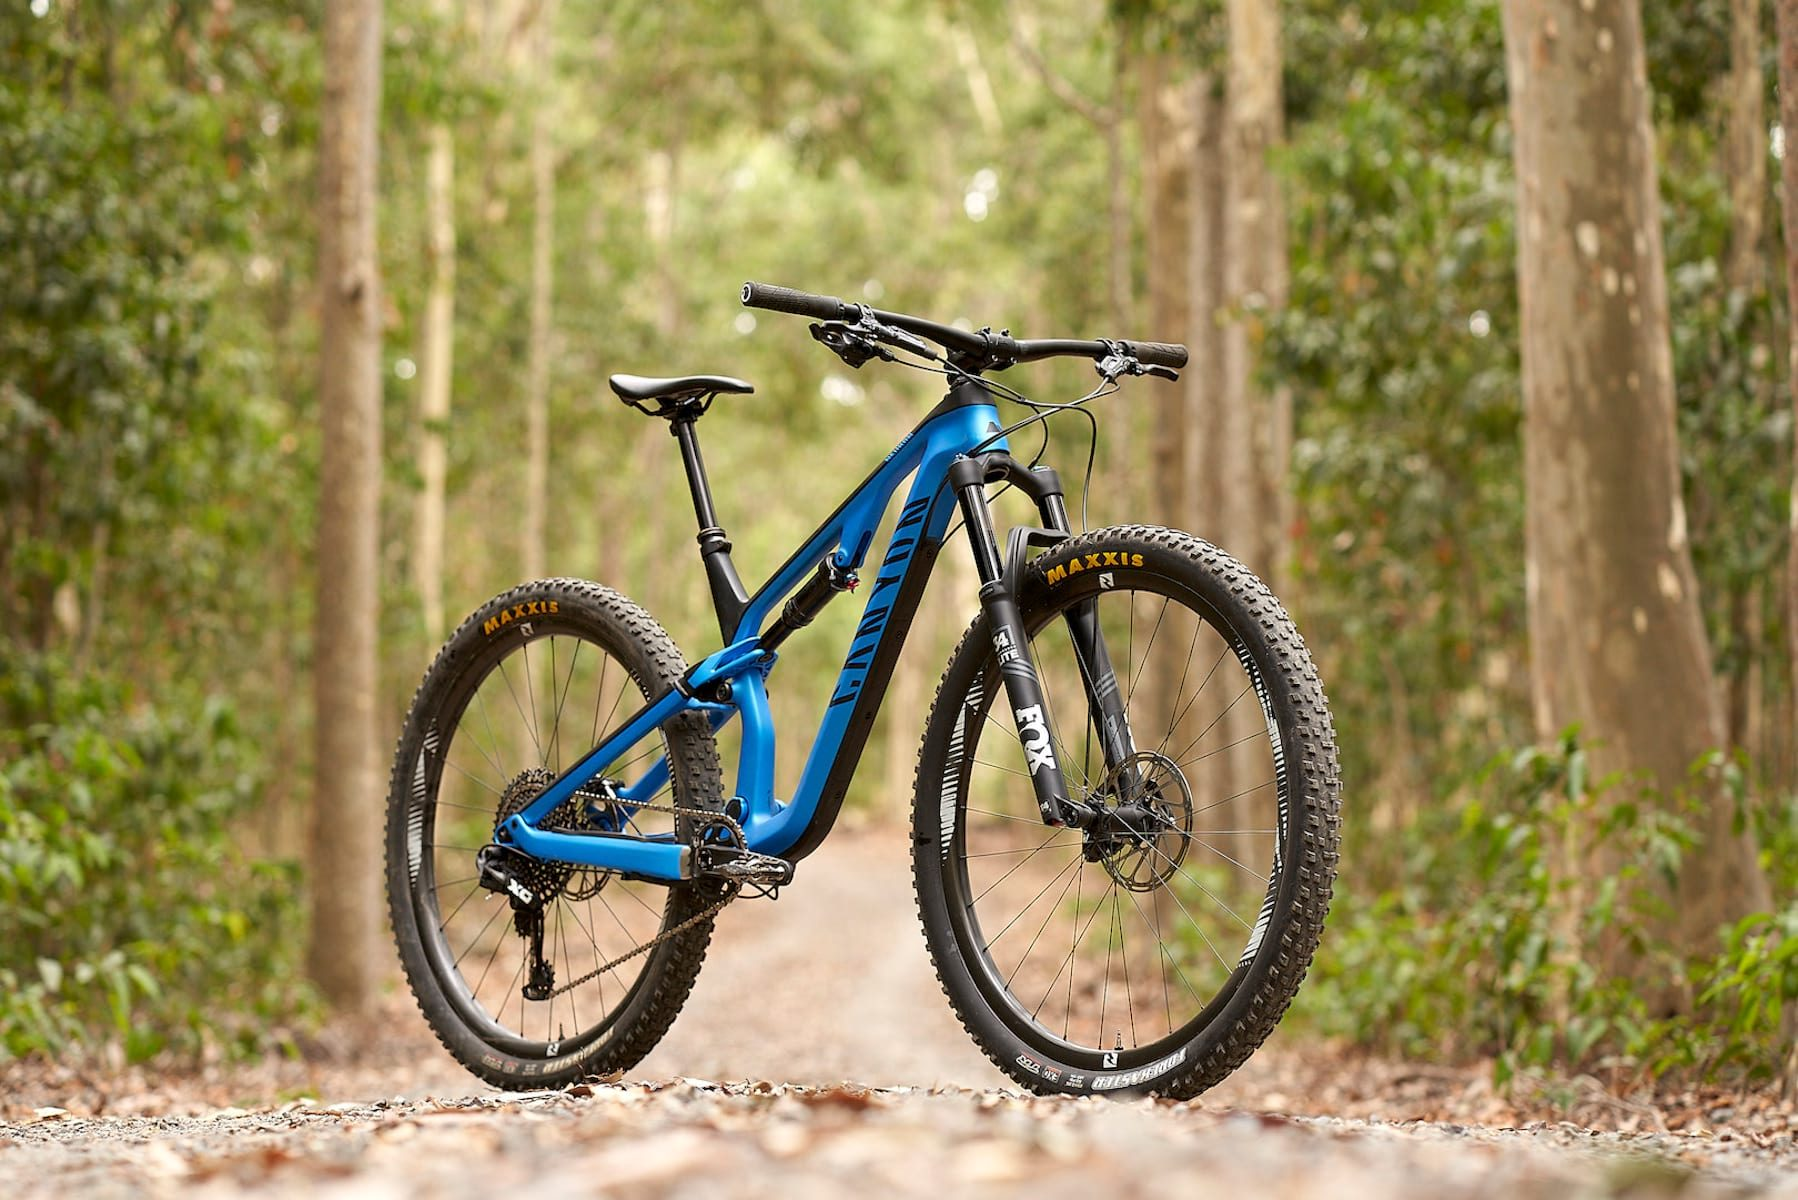 2019 Canyon Neuron CF 9 0 SL | A Longterm Review Of Canyon's